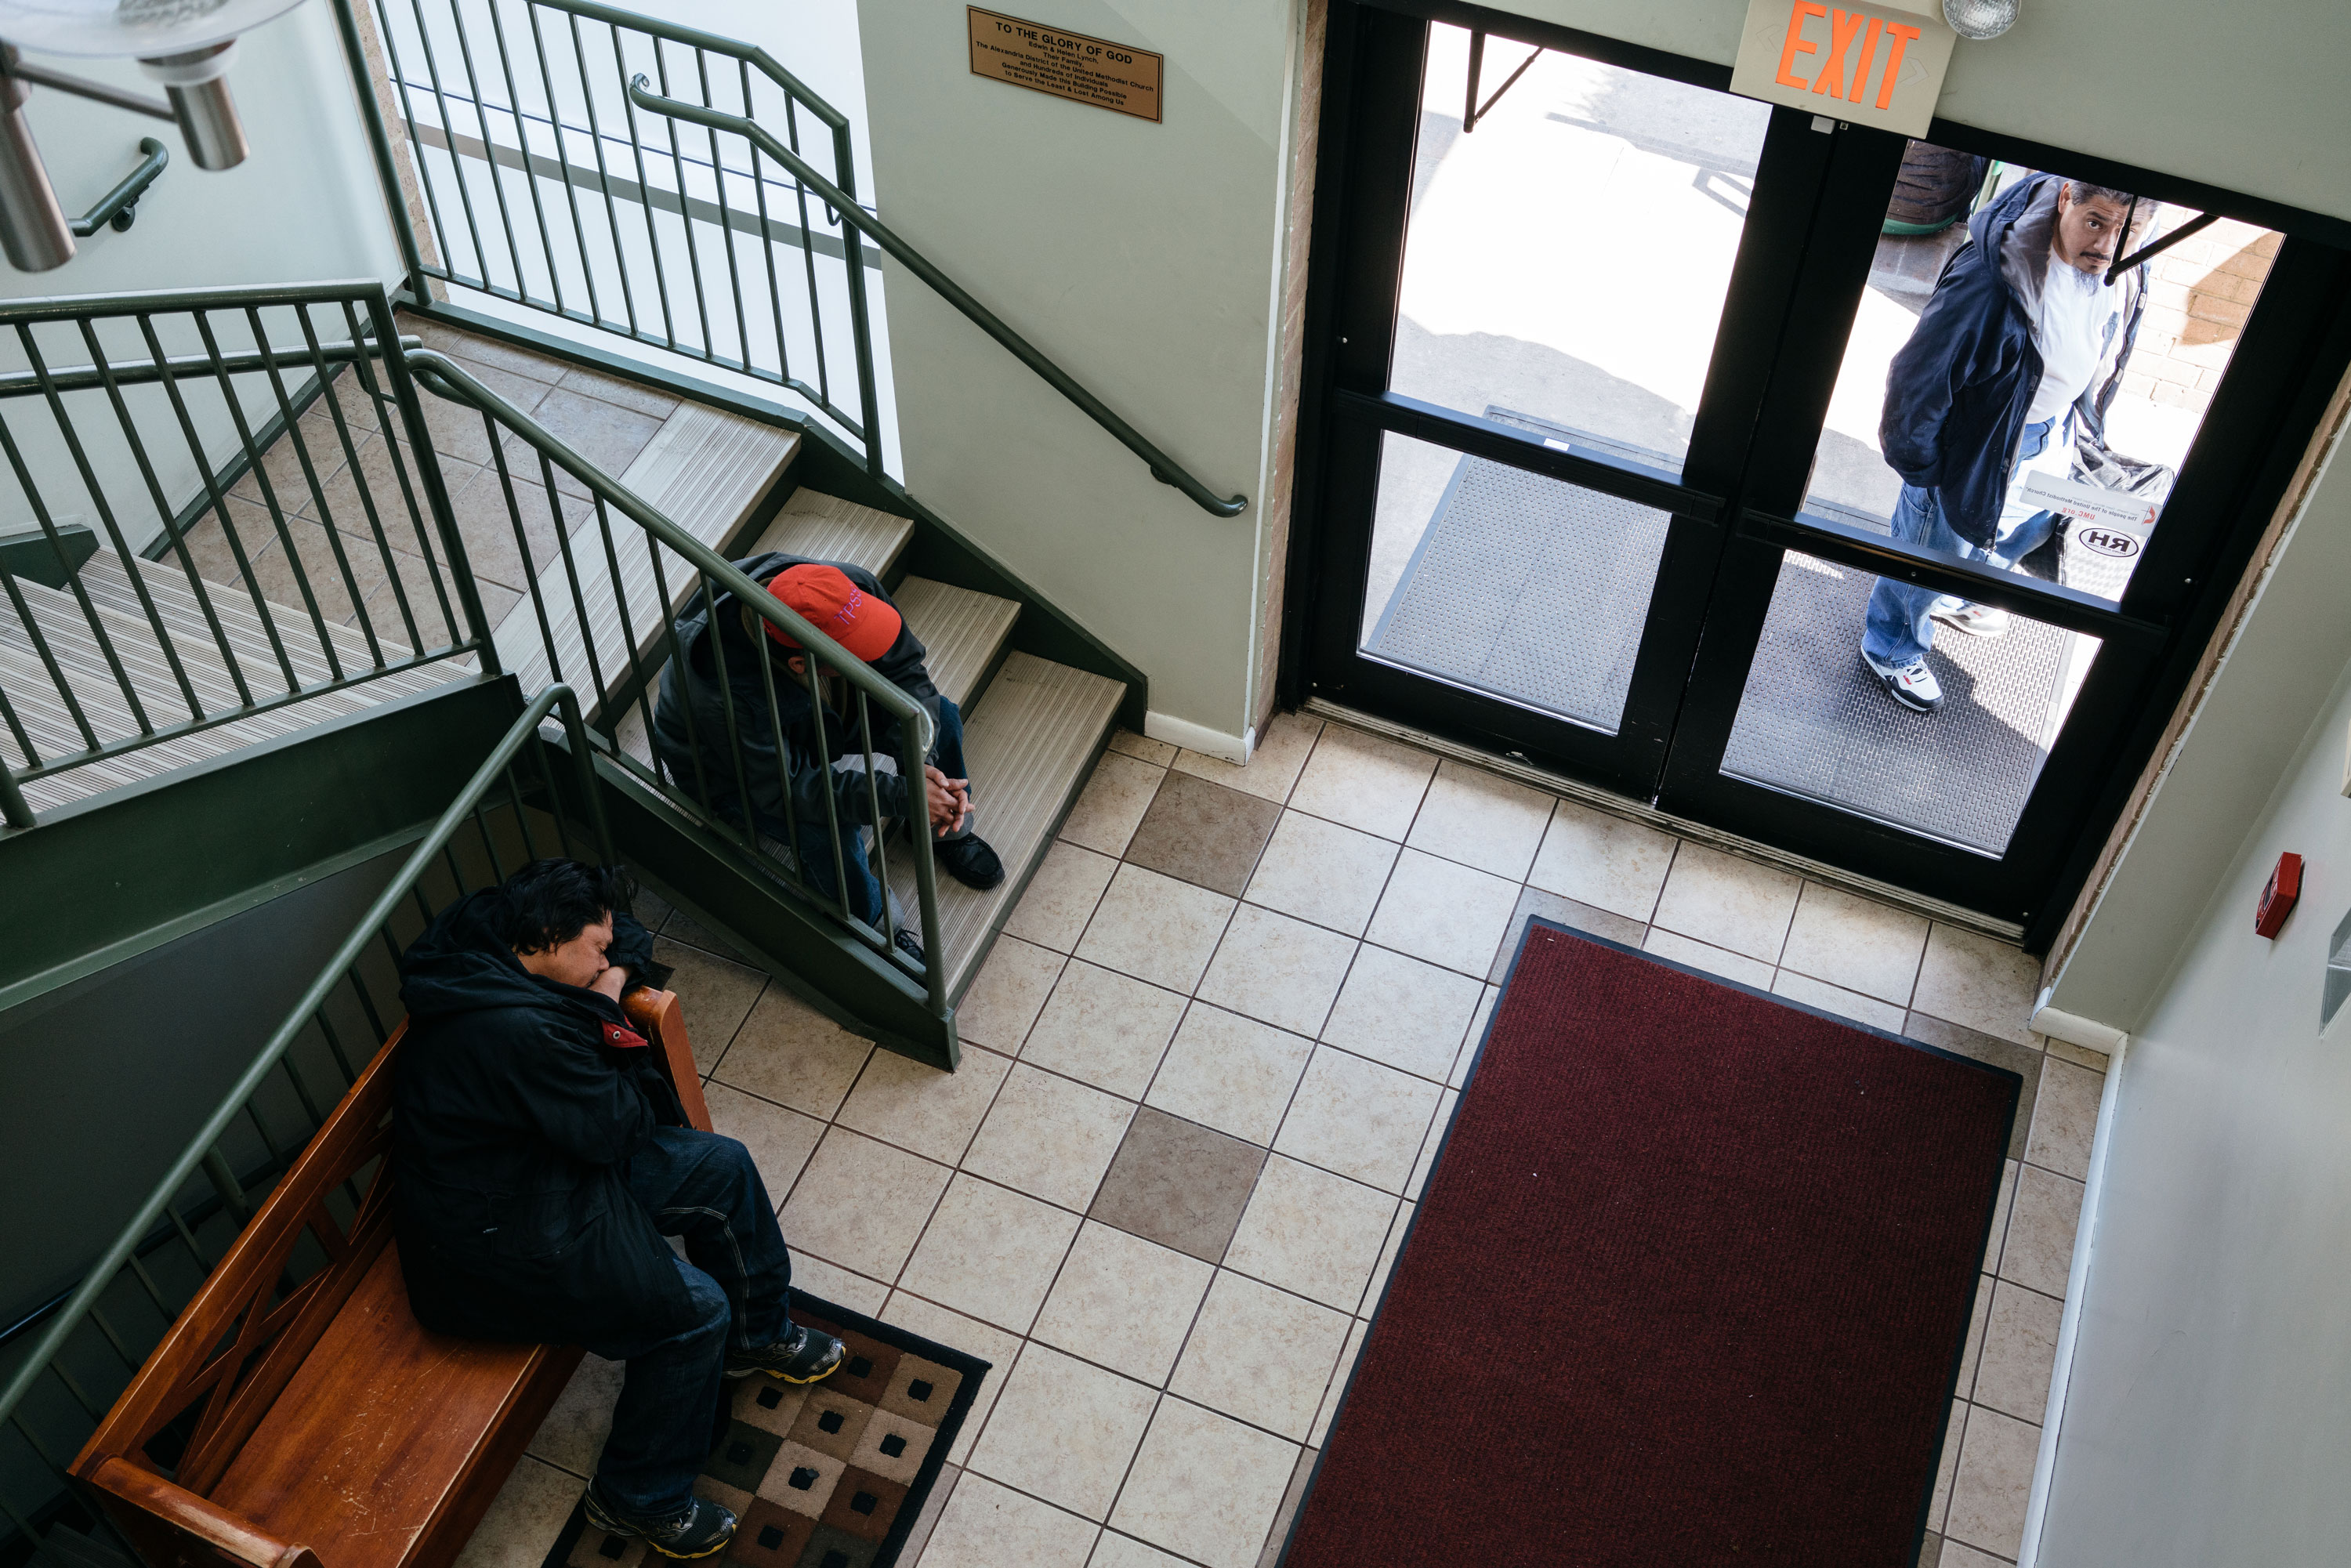 Members of the community gather for a soup kitchen at Rising Hope Mission Church in Alexandria, Va. on Feb. 26, 2017. Recently, six men leaving the shelter at the church were stopped by ICE and handcuffed and taken away.